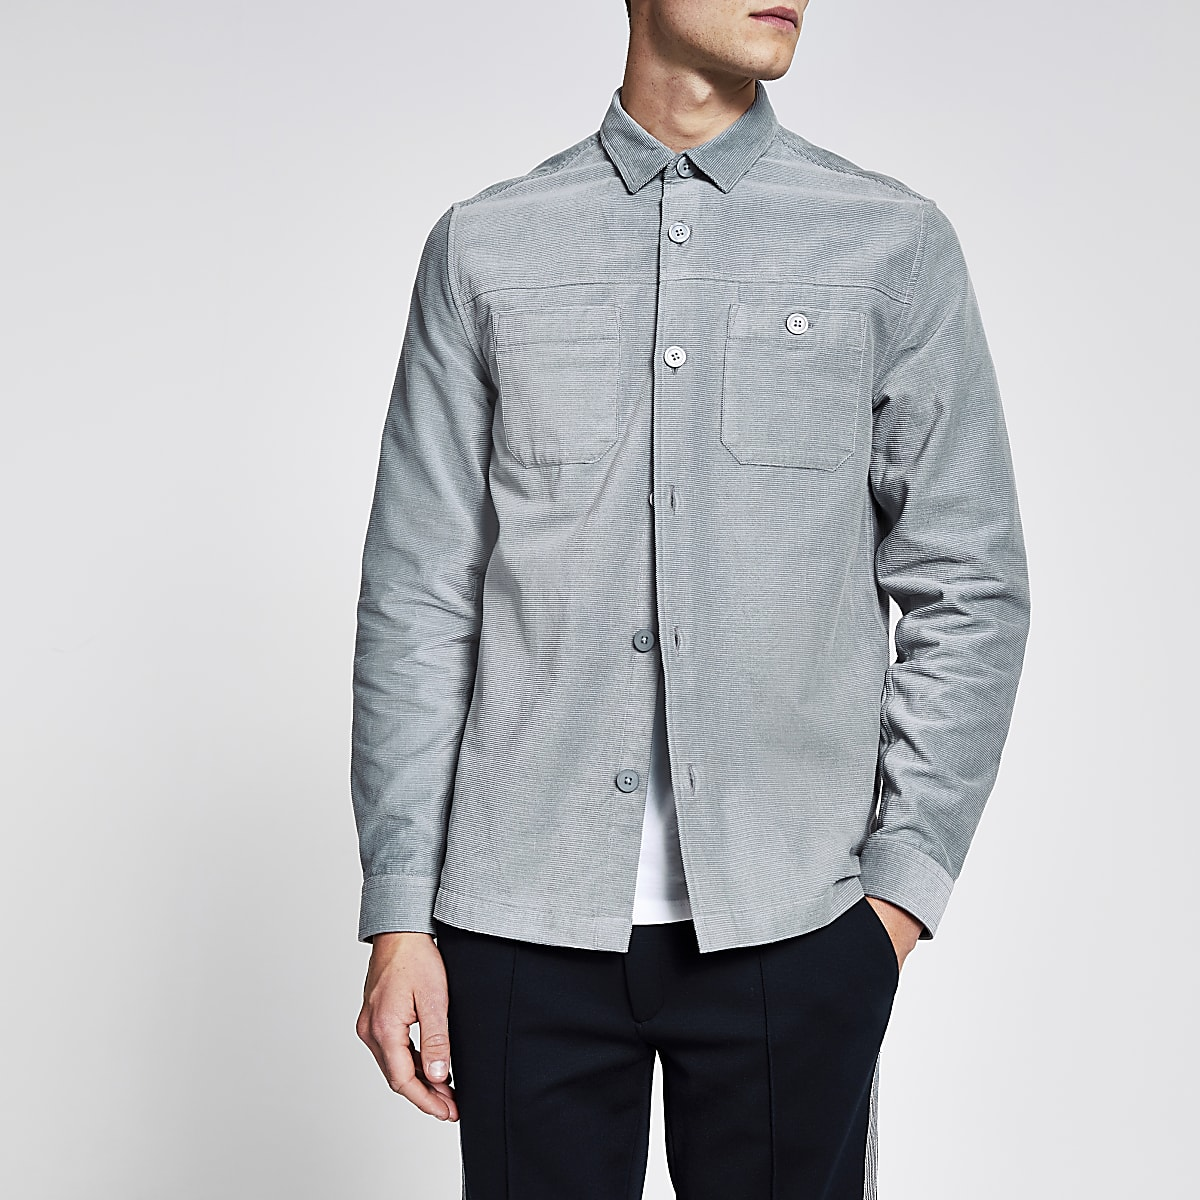 Light grey corduroy long sleeve shirt